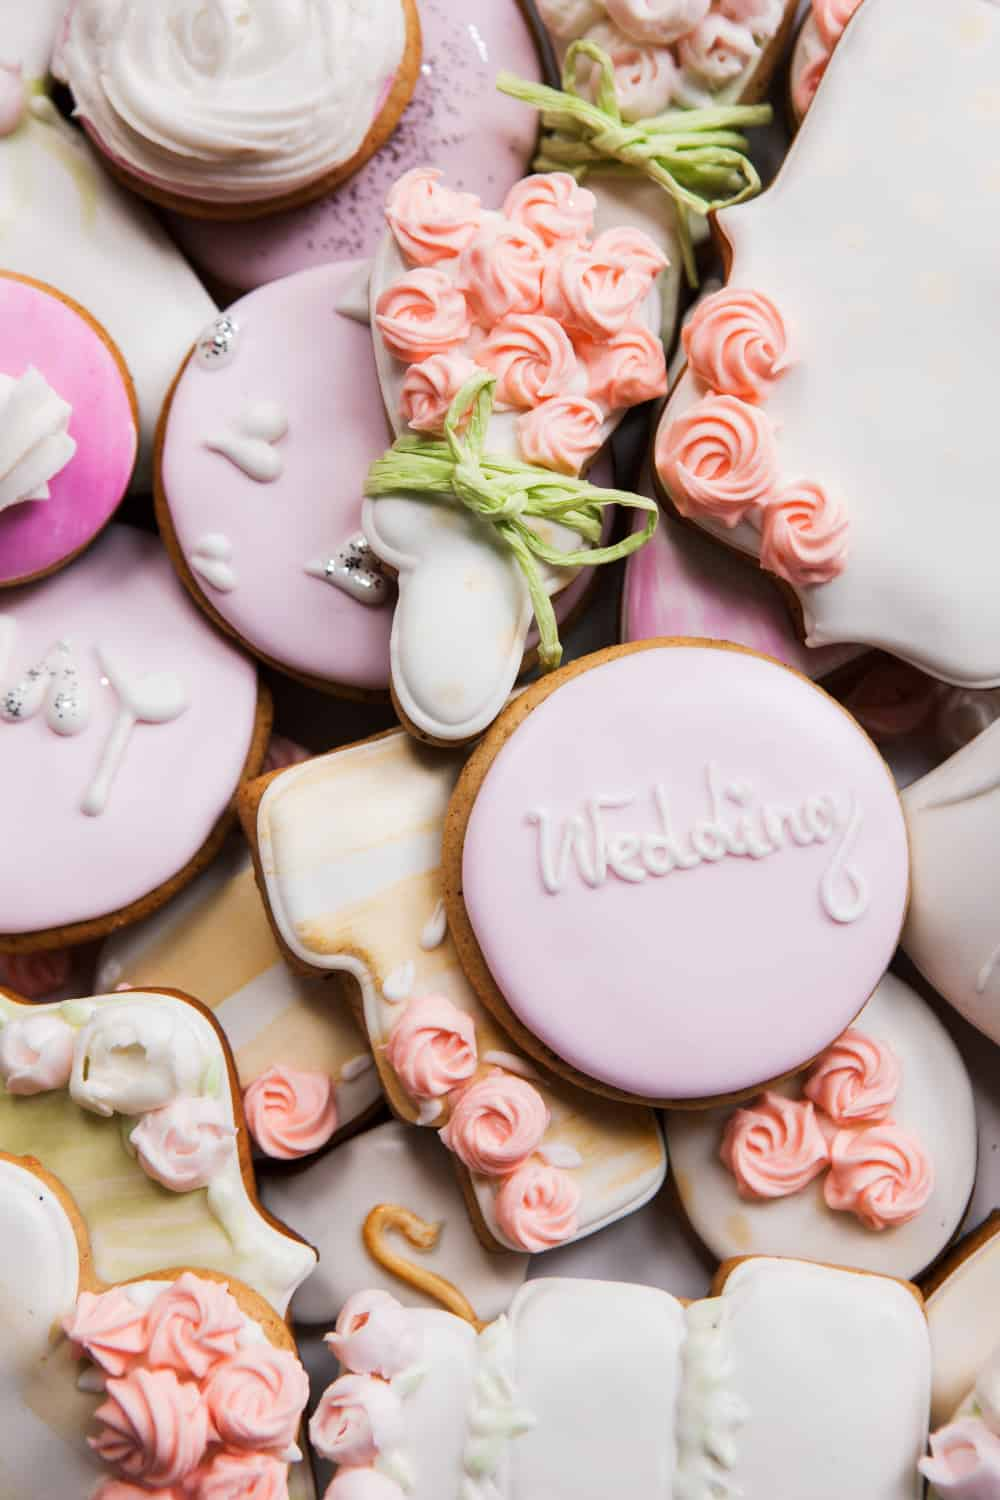 Wedding cookies in different shapes and colors make great unconventional wedding cakes.